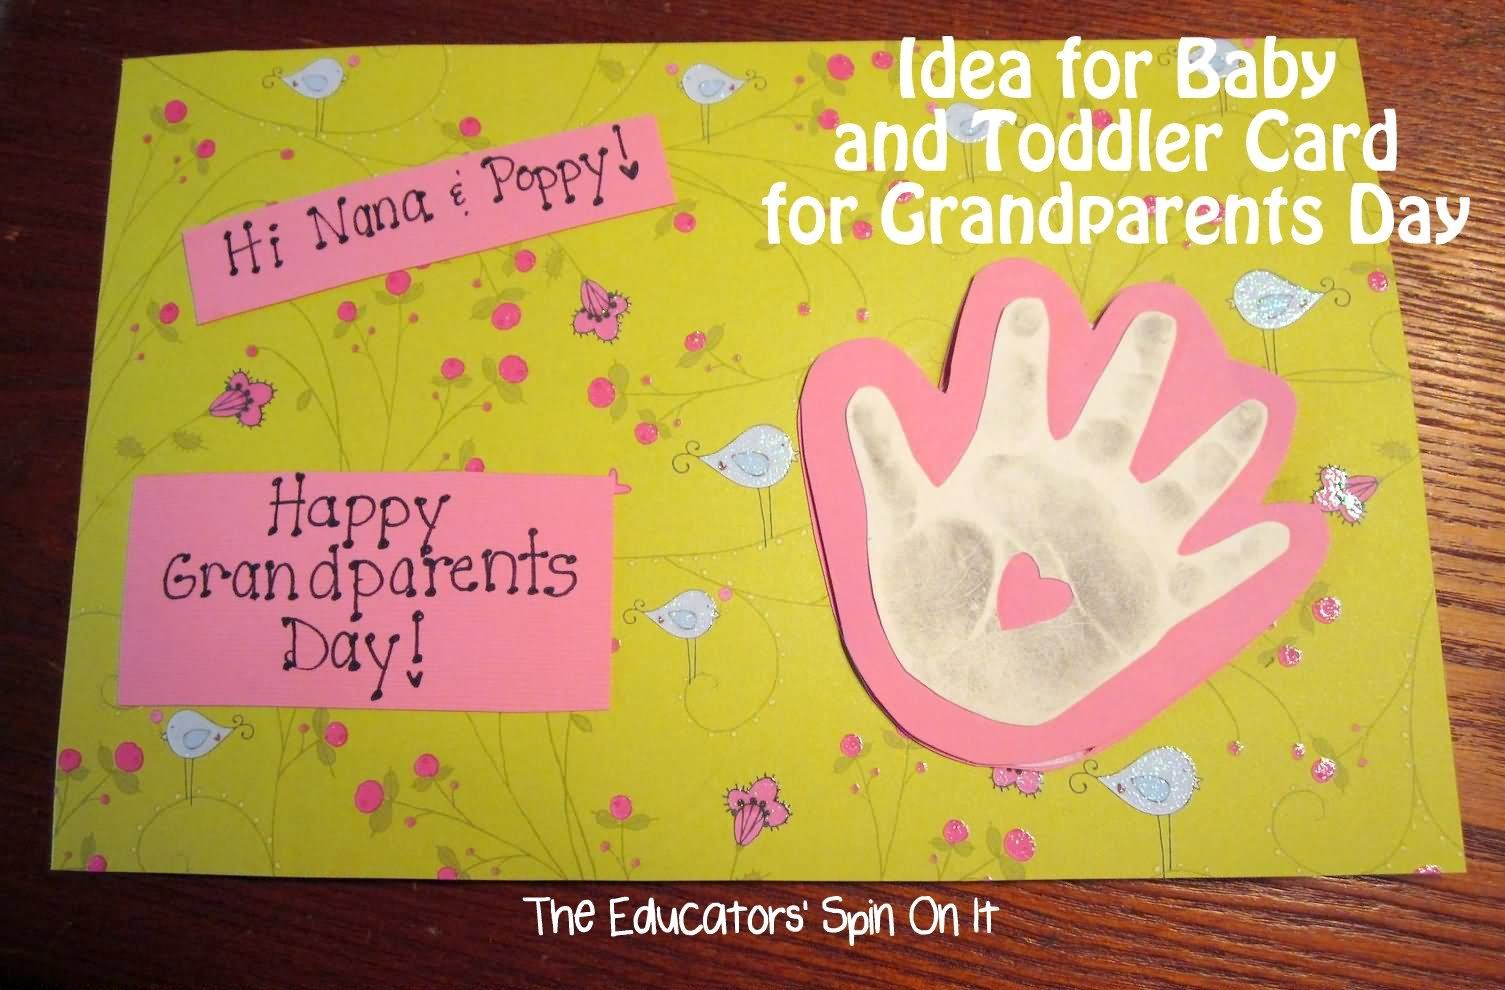 Beautiful Card Making Ideas For Grandparents Day Part - 2: Idea For Baby And Toddler Card For Grandparents Day Happy Grandparents Day